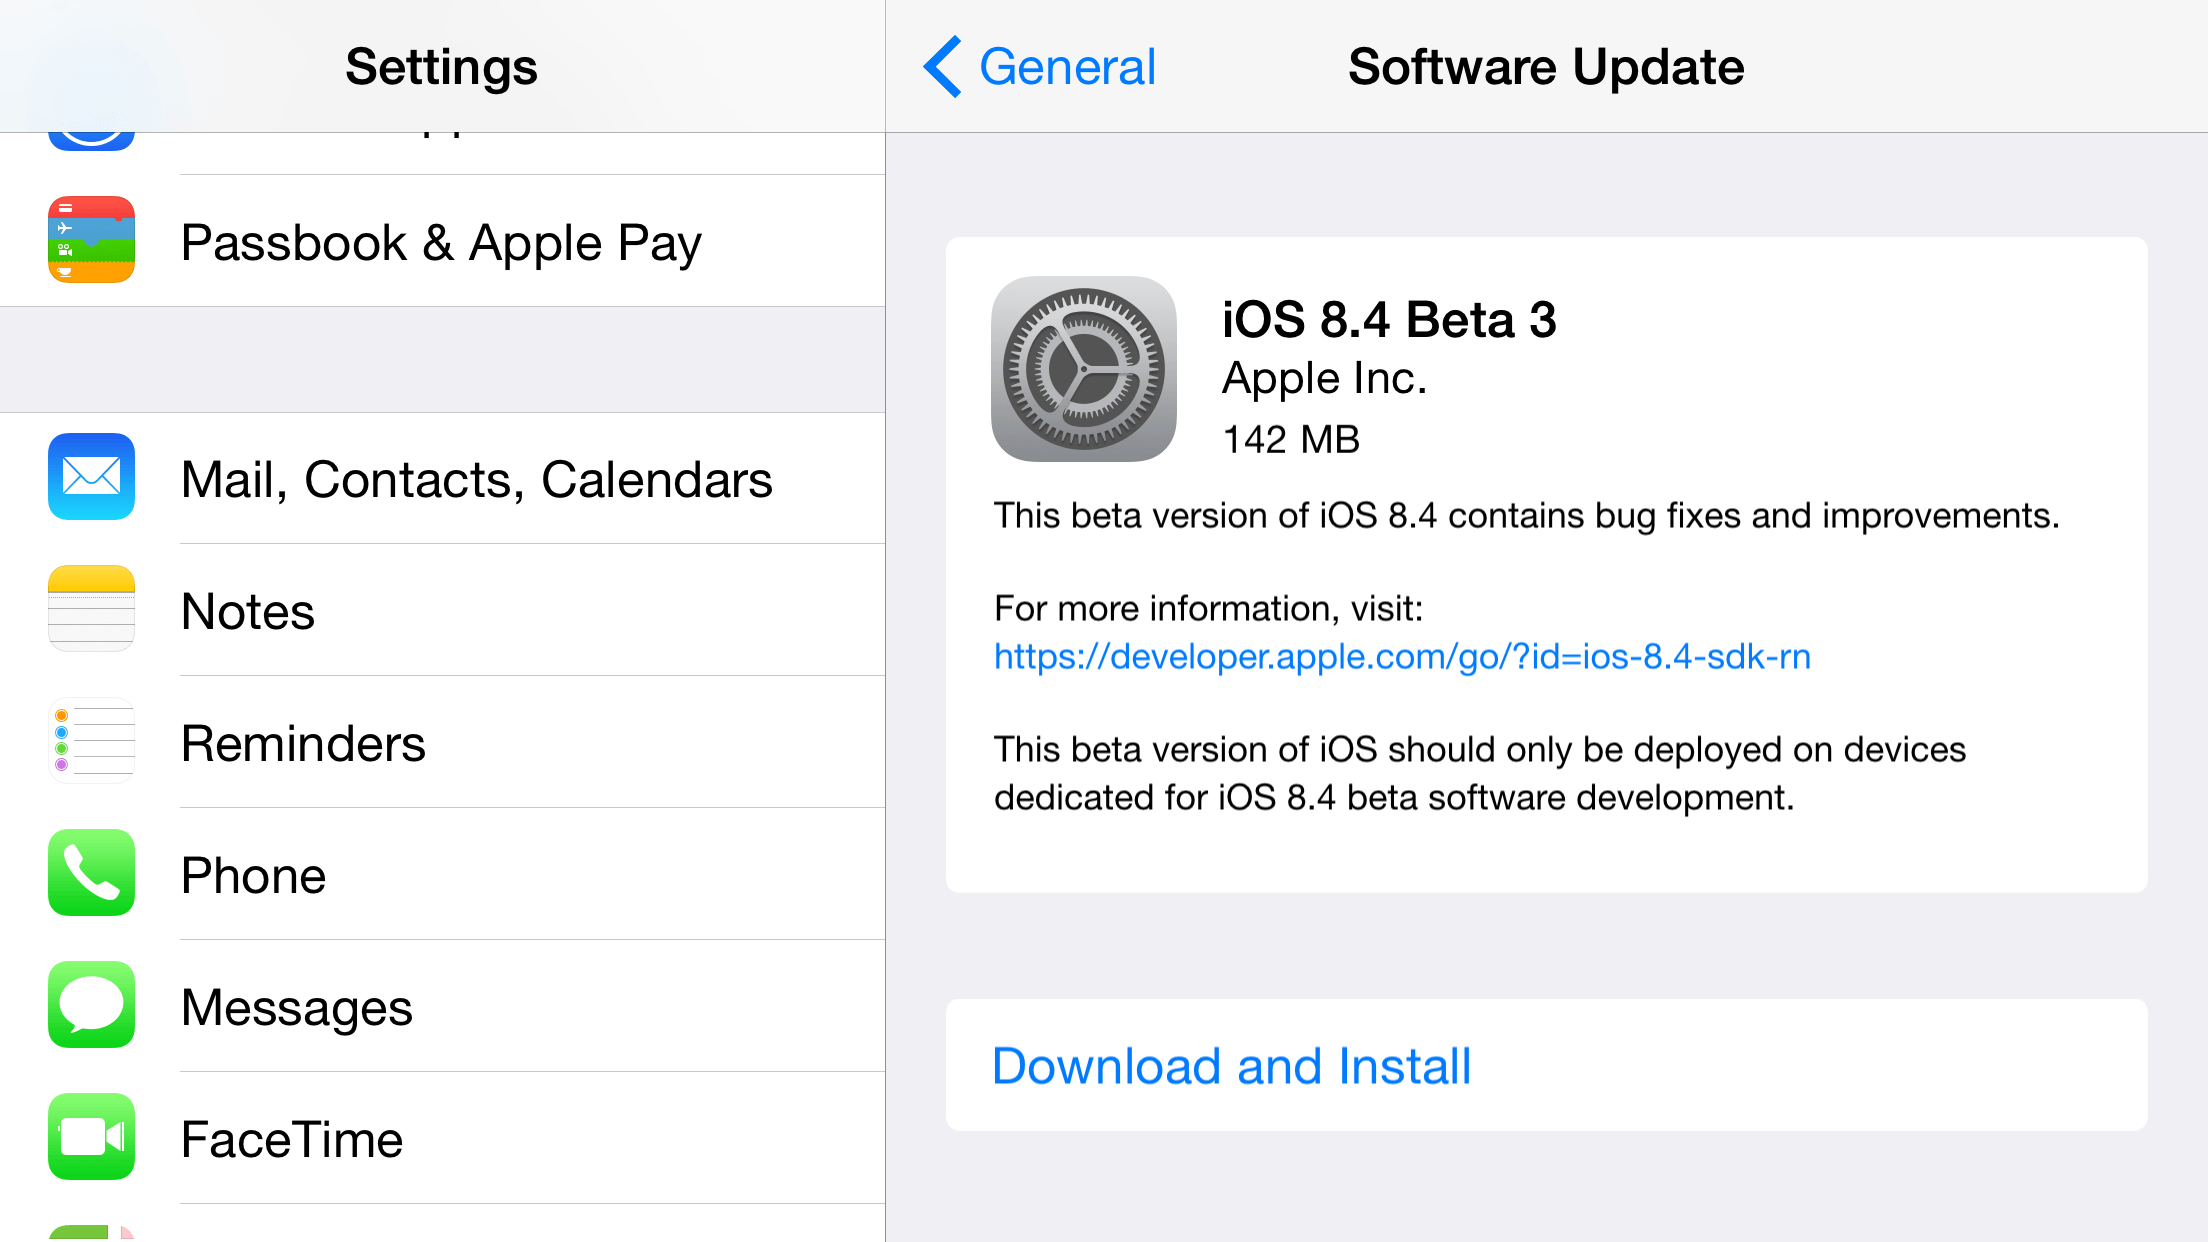 apple-ios-8-4-beta-3-120515